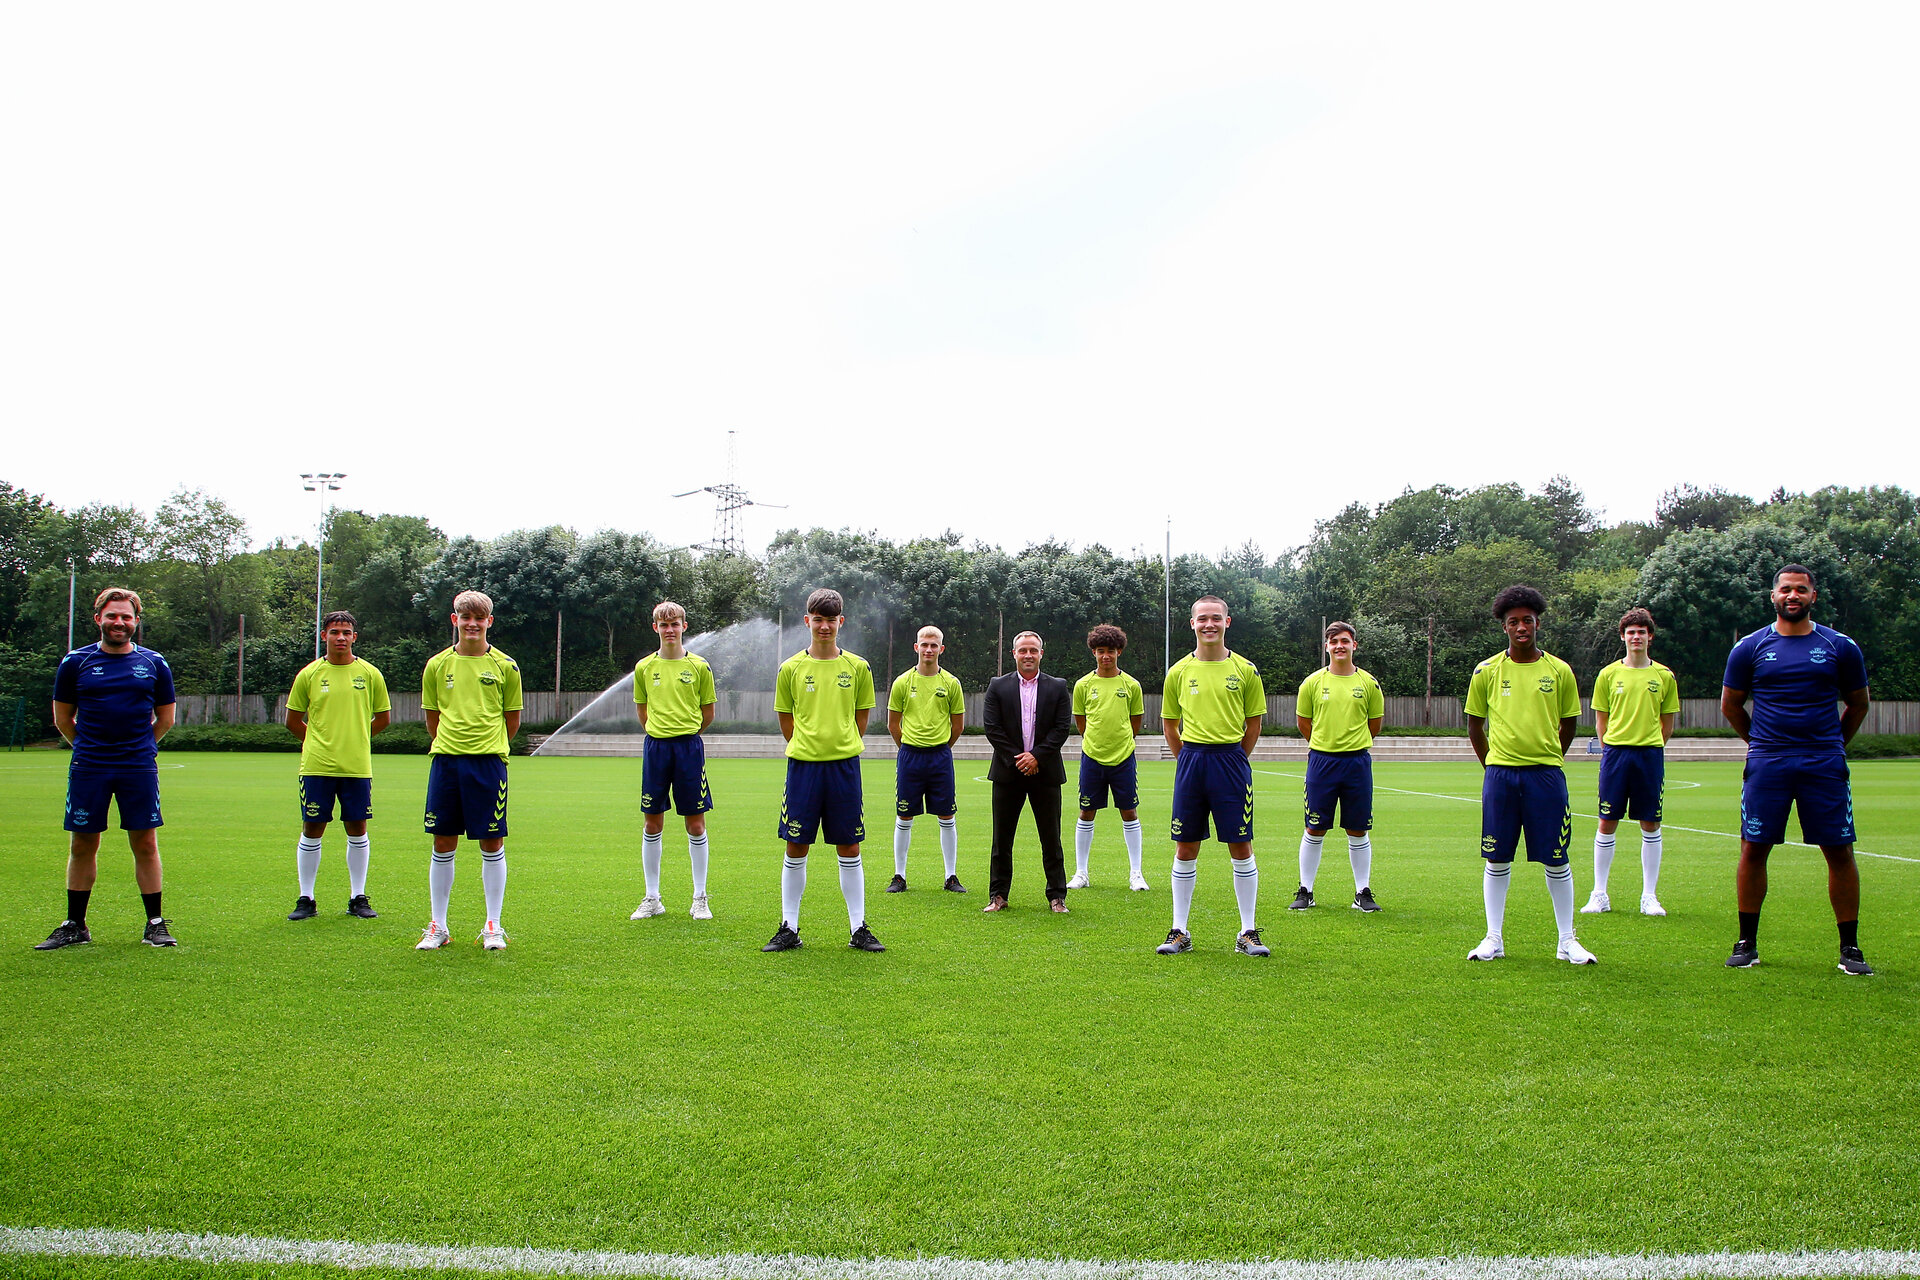 SOUTHAMPTON, ENGLAND - July 01: (Left to Right) Joshua Squires, Dominic Ballard, Cameron Bragg, Ryan Chavez-Munoz, Jeremiah Hewlett, Kamari Doyle, Sonnie Davis, Tommy-Lee Higgs, Joshua Lett and  Rylee Wright photographed signing as a new scholars with Southampton FC at Staplewood training ground on July 01, 2021 in Southampton, England. (Photo by Isabelle Field/Southampton FC via Getty Images)